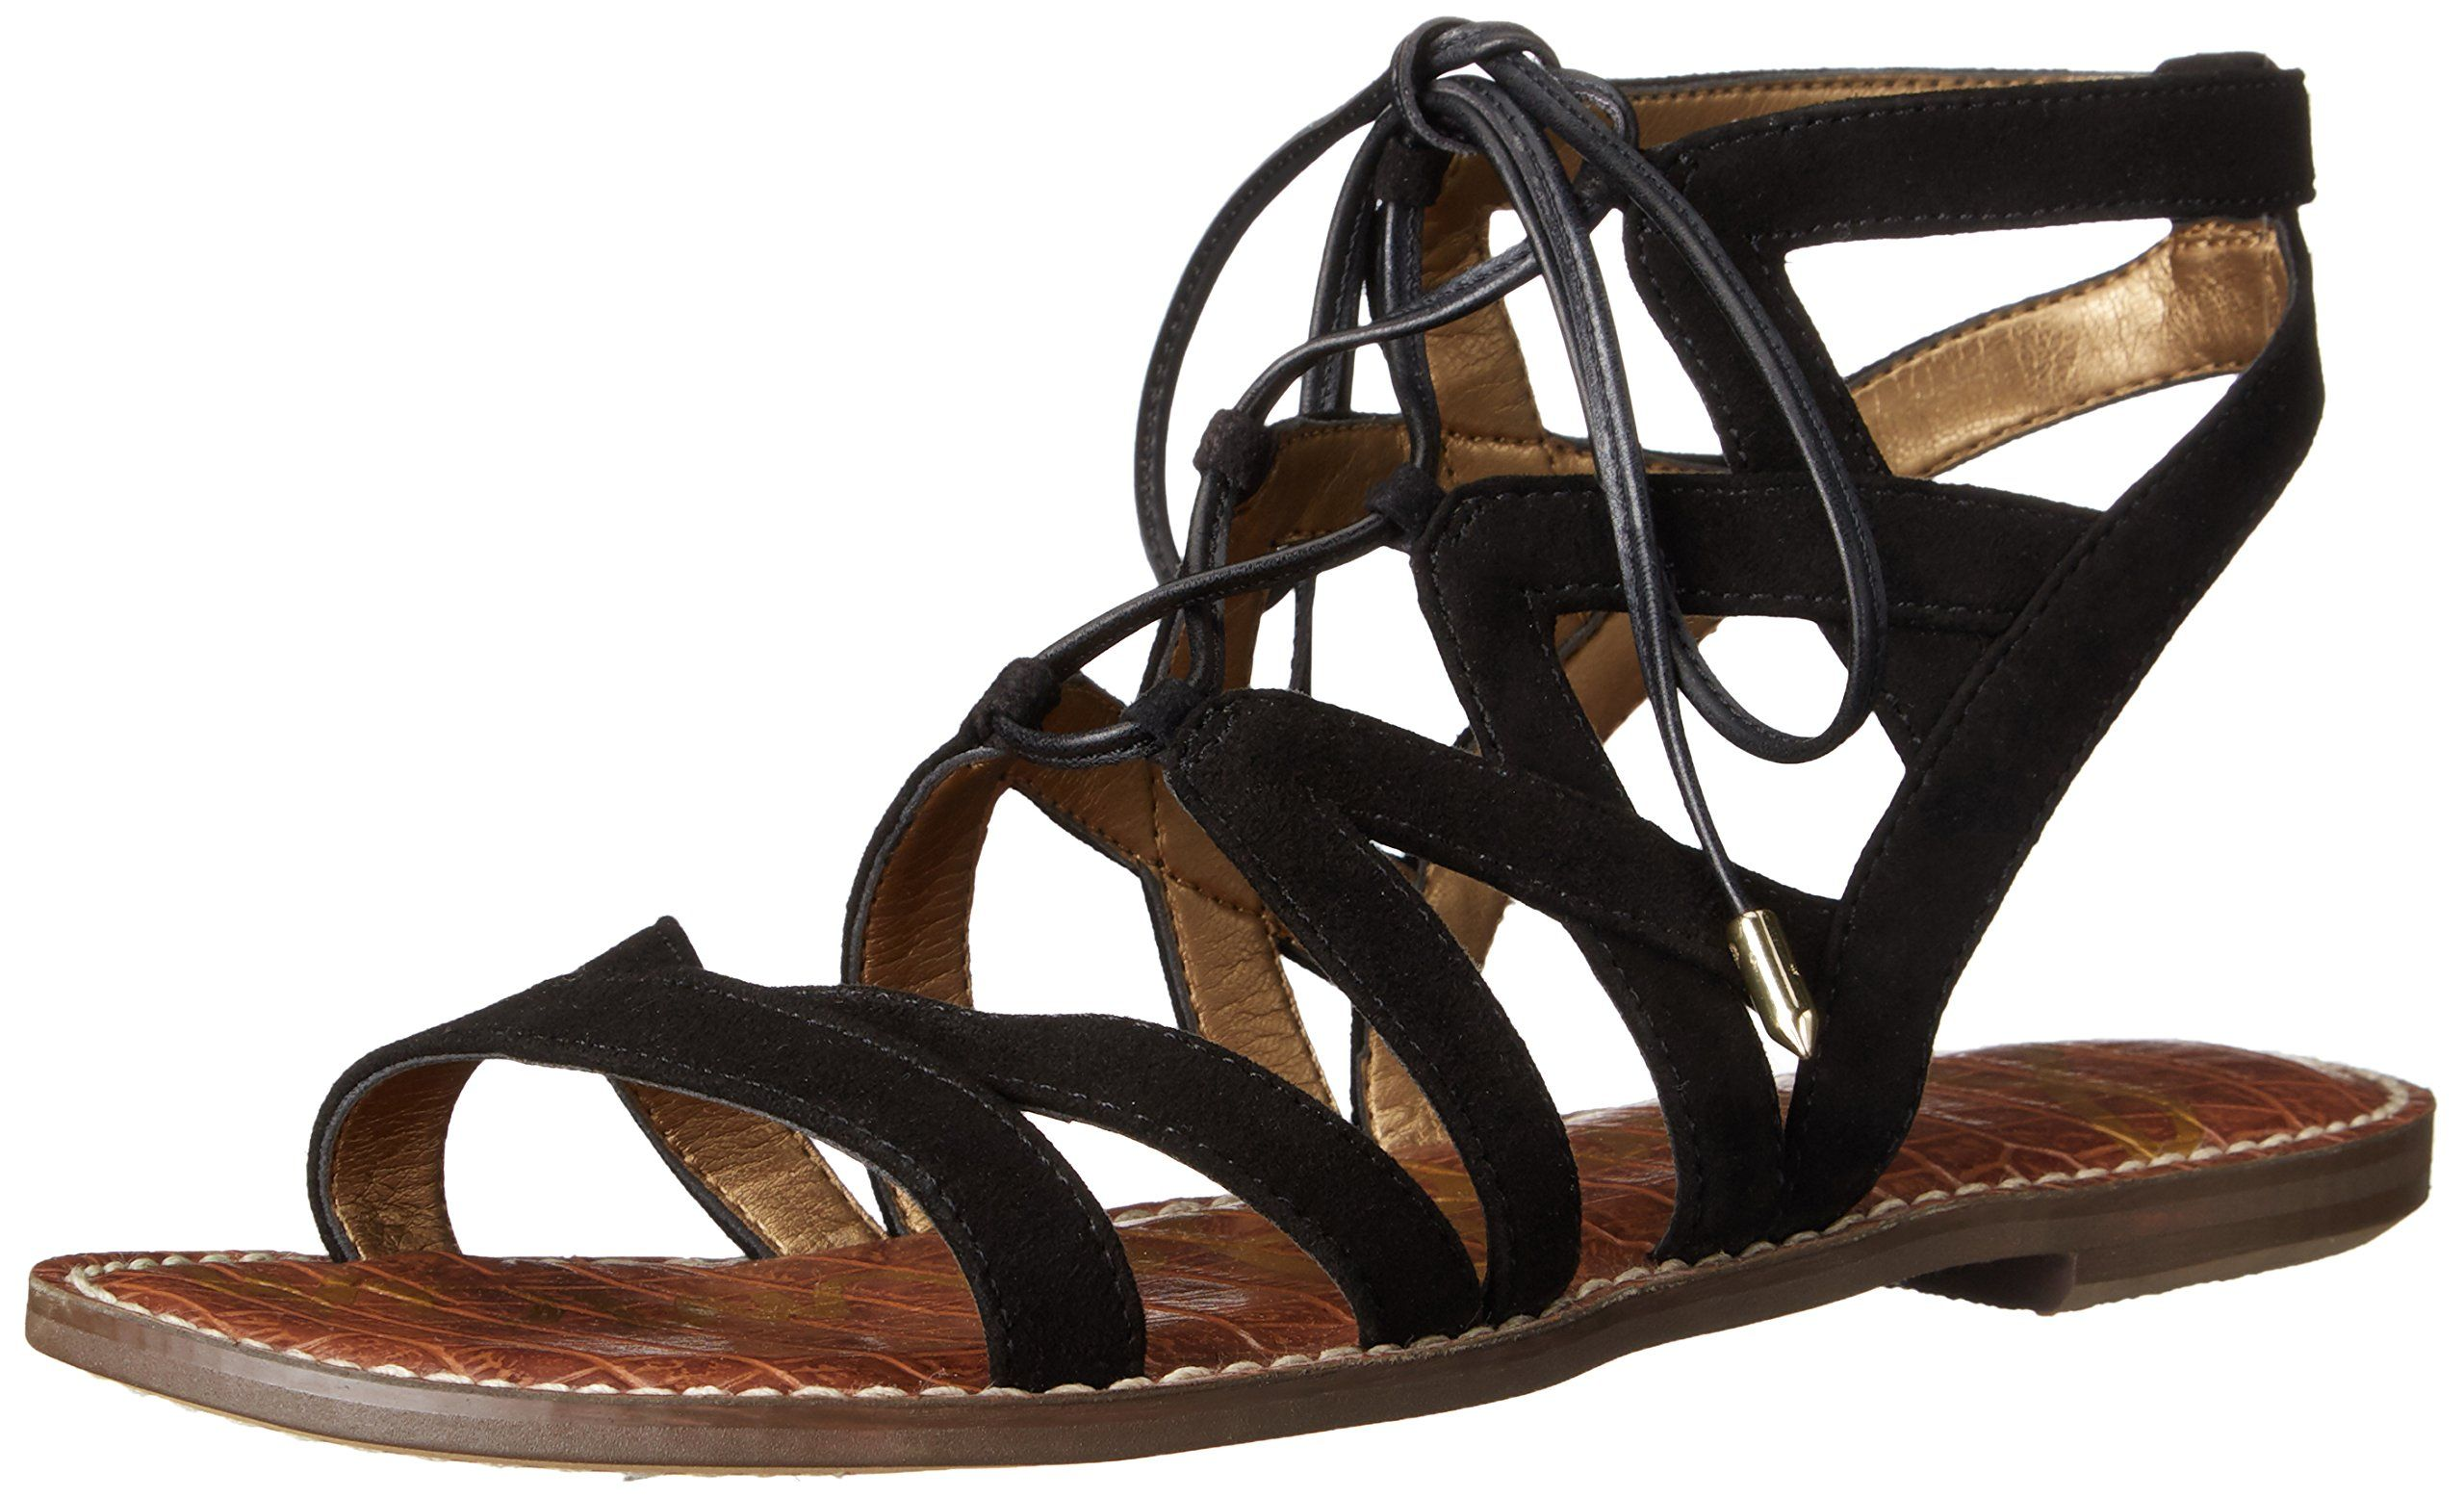 Sam Edelman Women's Gemma Black M